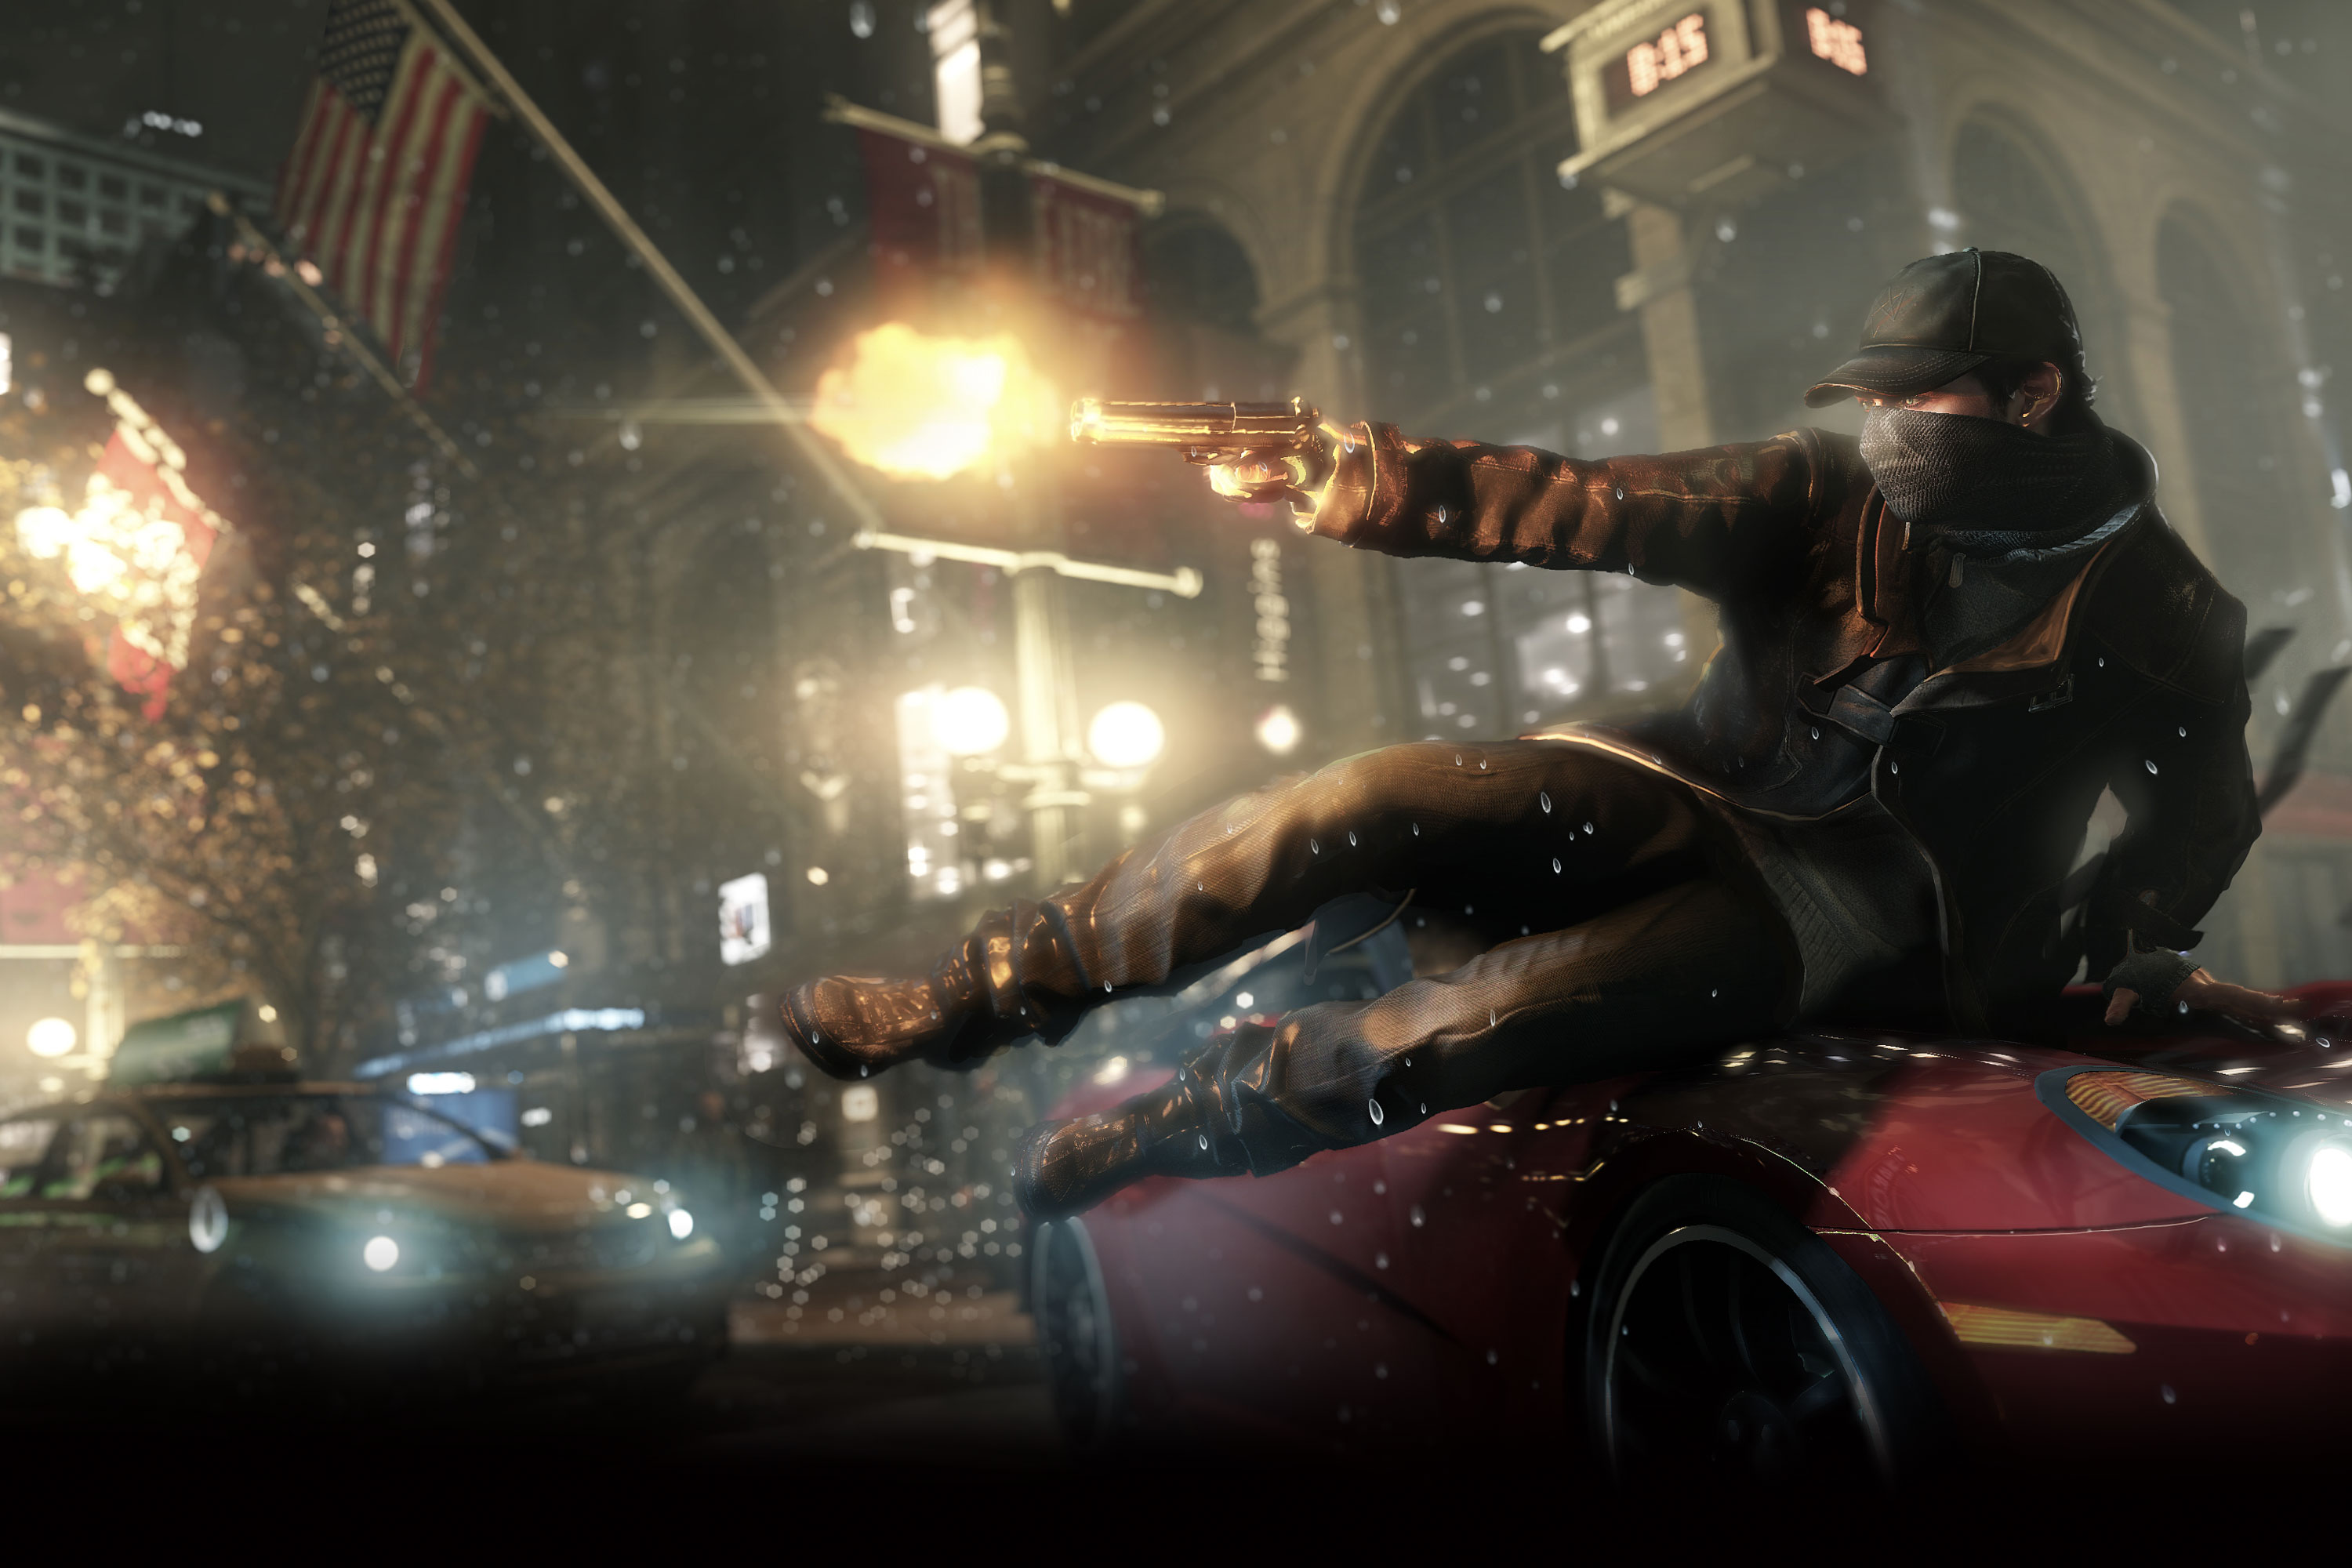 watch dogs A4